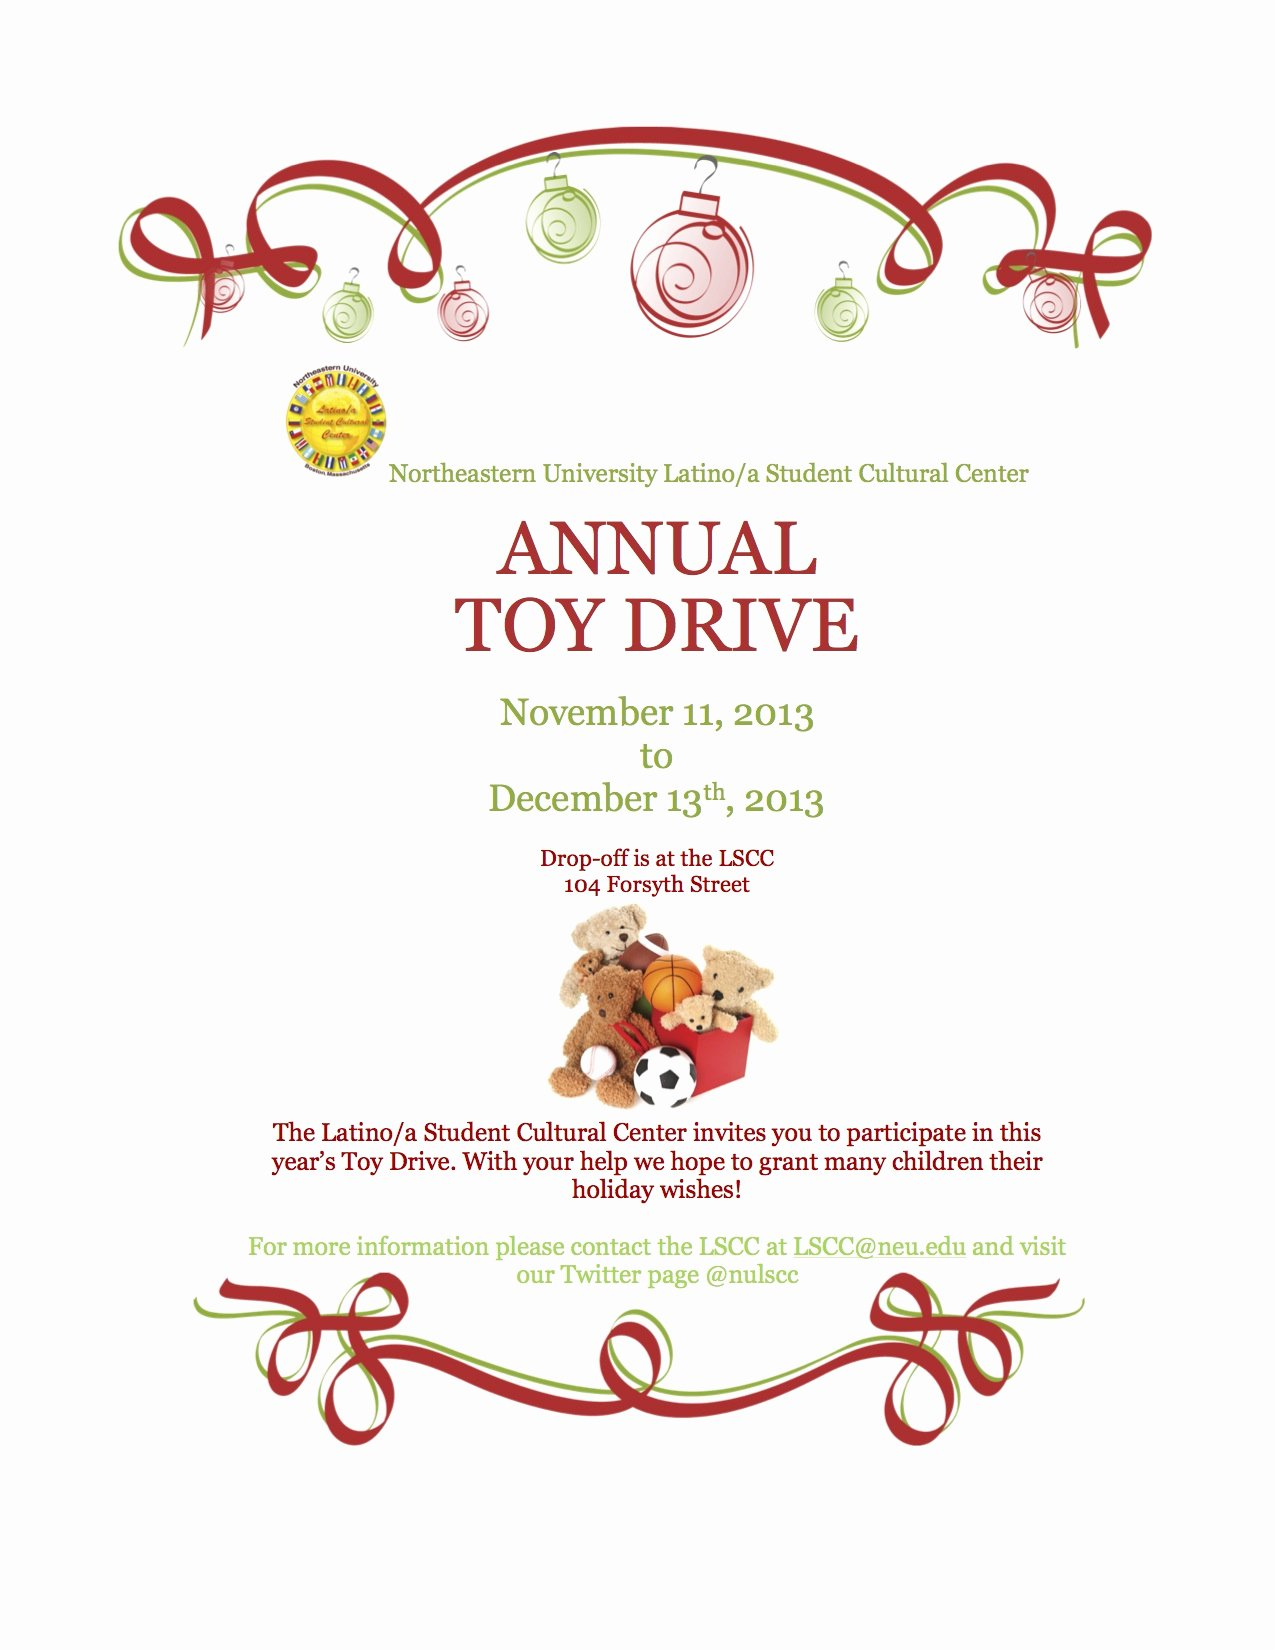 Toy Drive Flyer Template Free Inspirational Lscc toy Drive